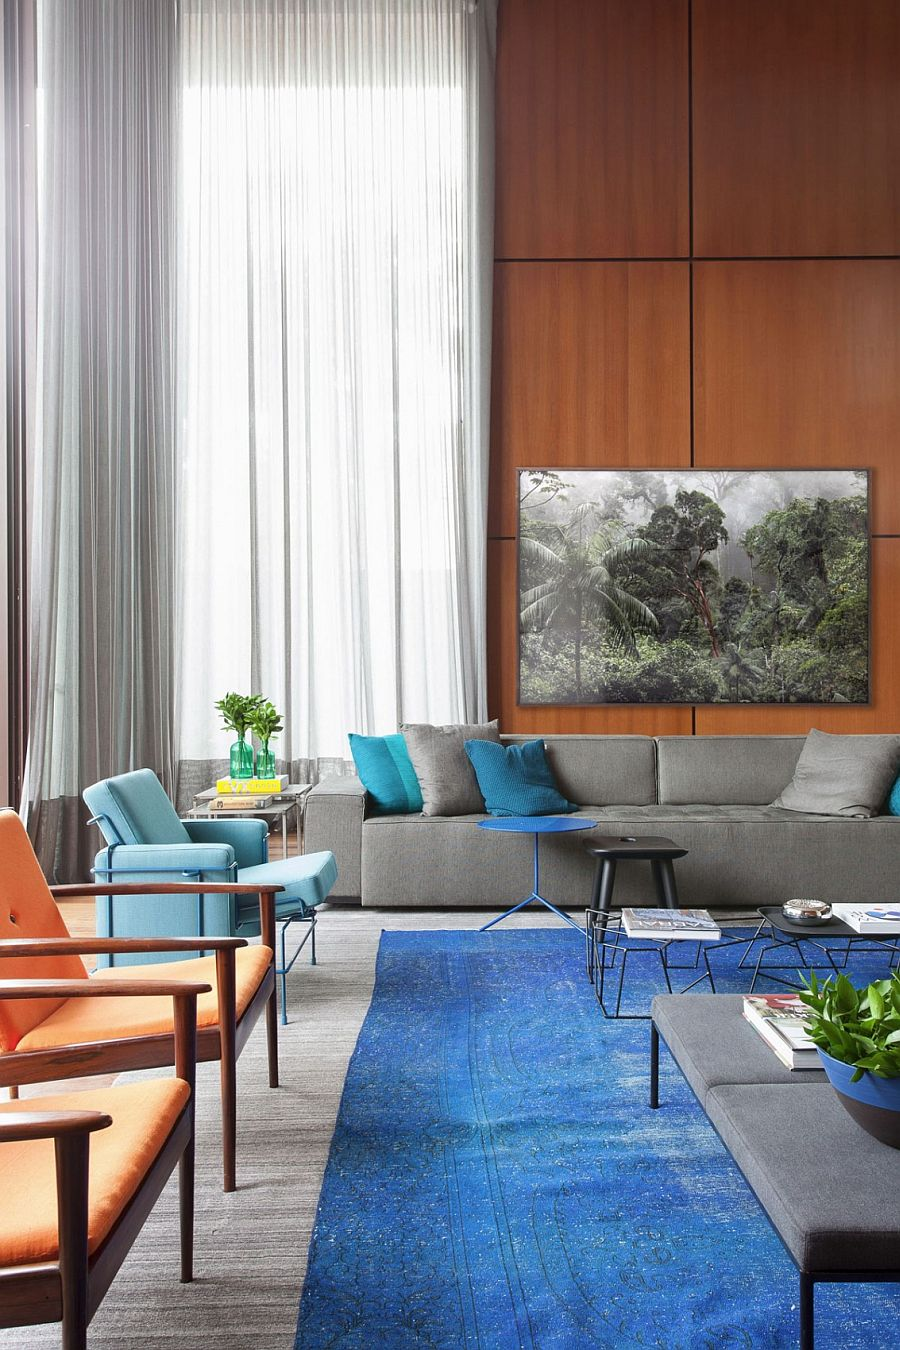 Contemporary decor, accessories and coffee tables also add subtle geometric pattern to the large living area